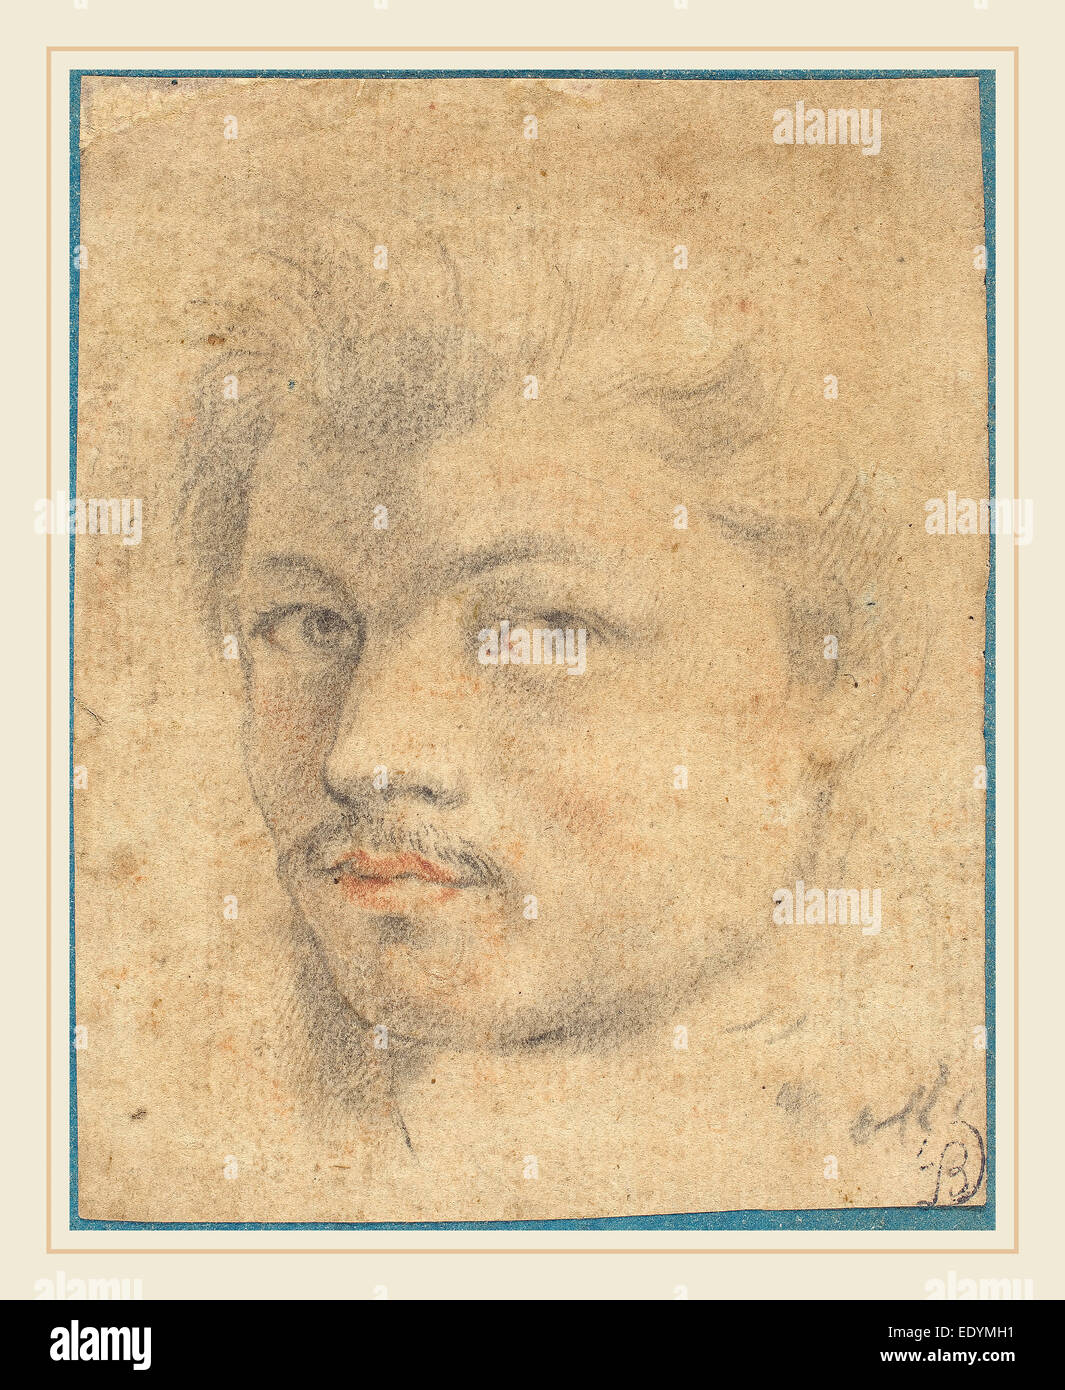 Jacob Matham, Dutch (1571-1631), Head of a Man, black and red chalk on laid paper - Stock Image